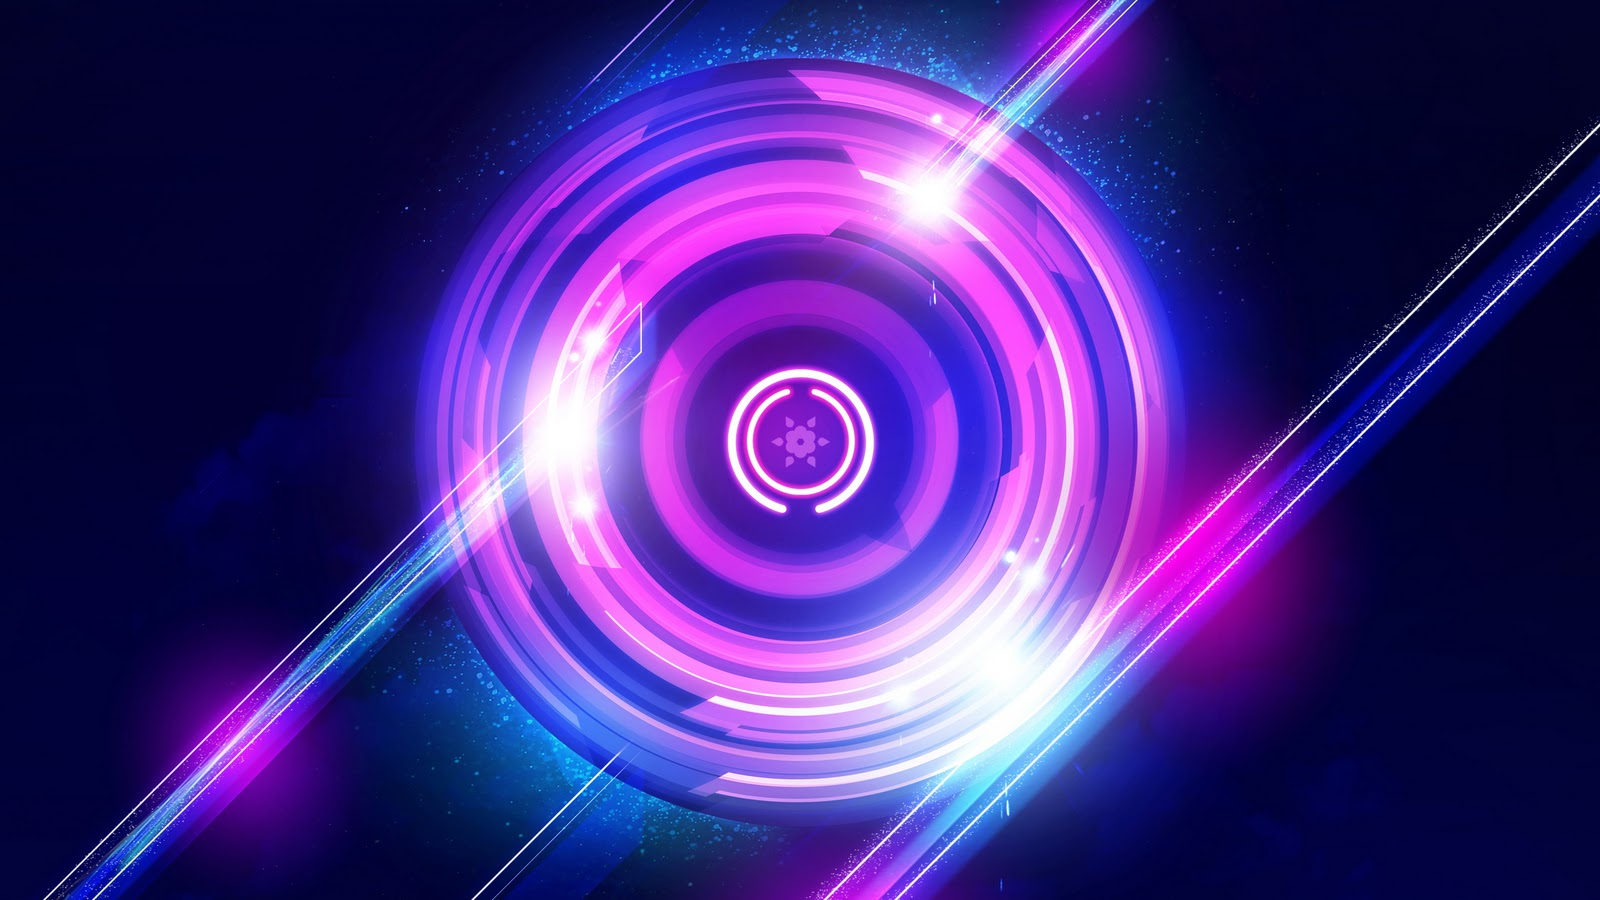 Abstract Light Wallpaper 1597 Hd Wallpapers in Abstract   Imagescicom 1600x900